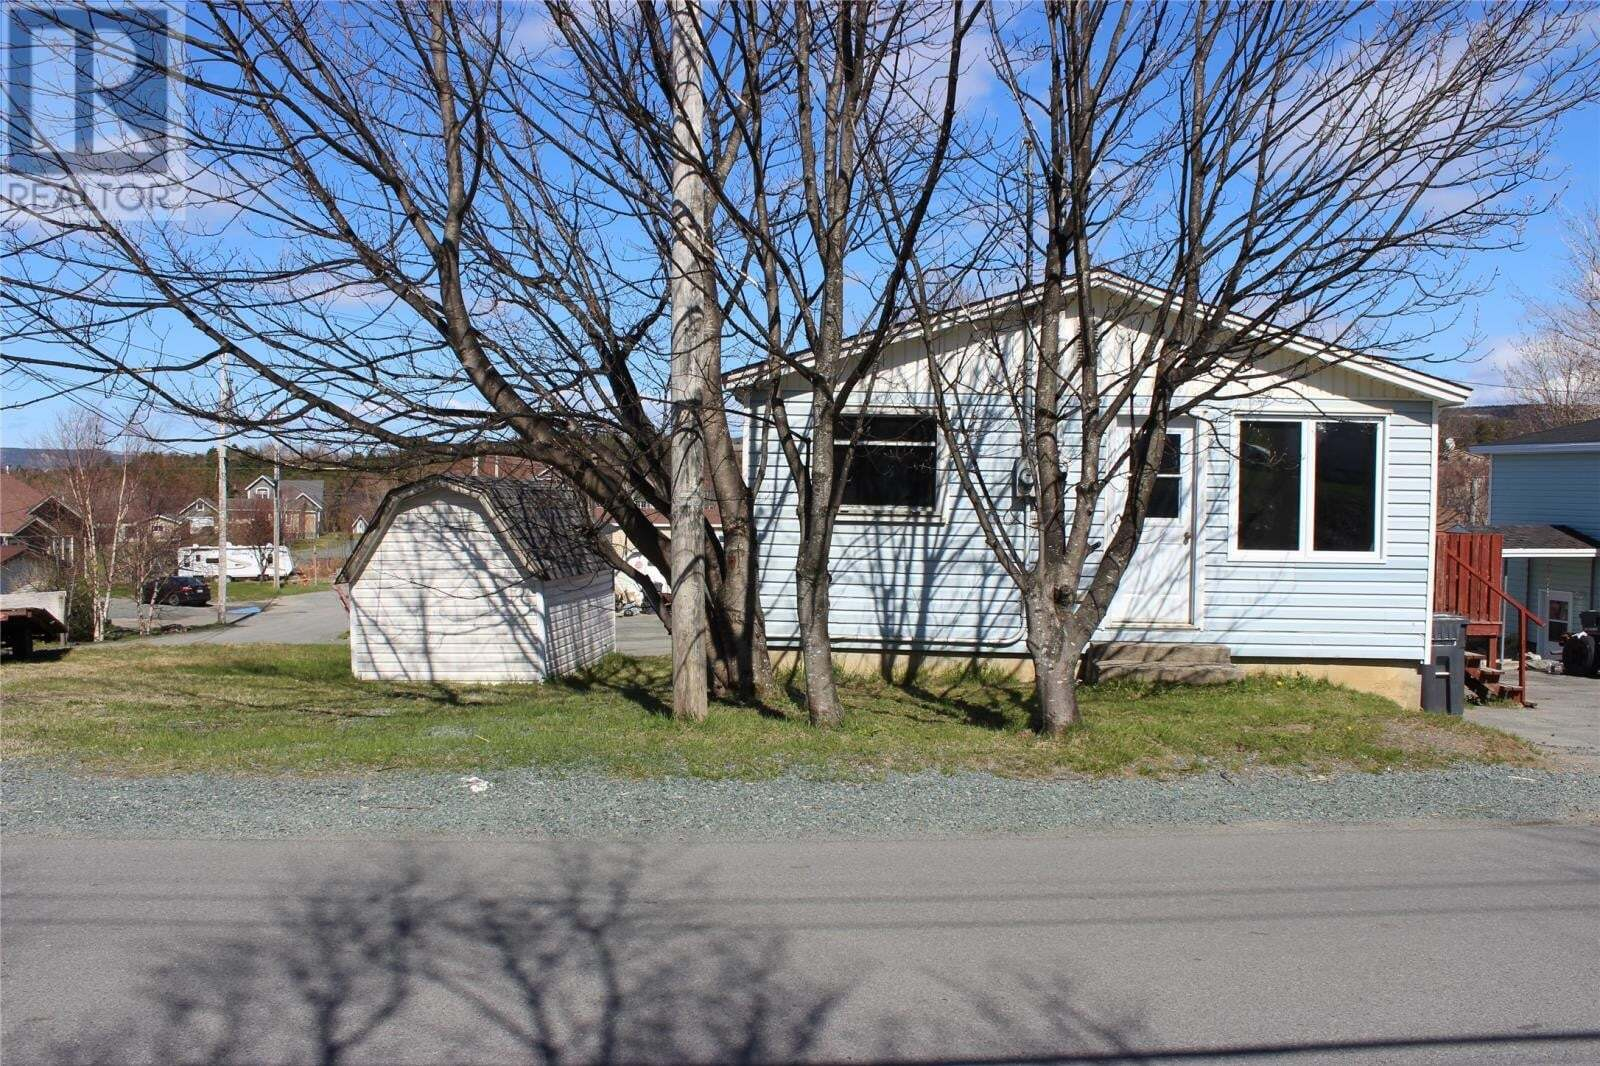 House for sale at 115 Greeleytown Rd Conception Bay South Newfoundland - MLS: 1208892